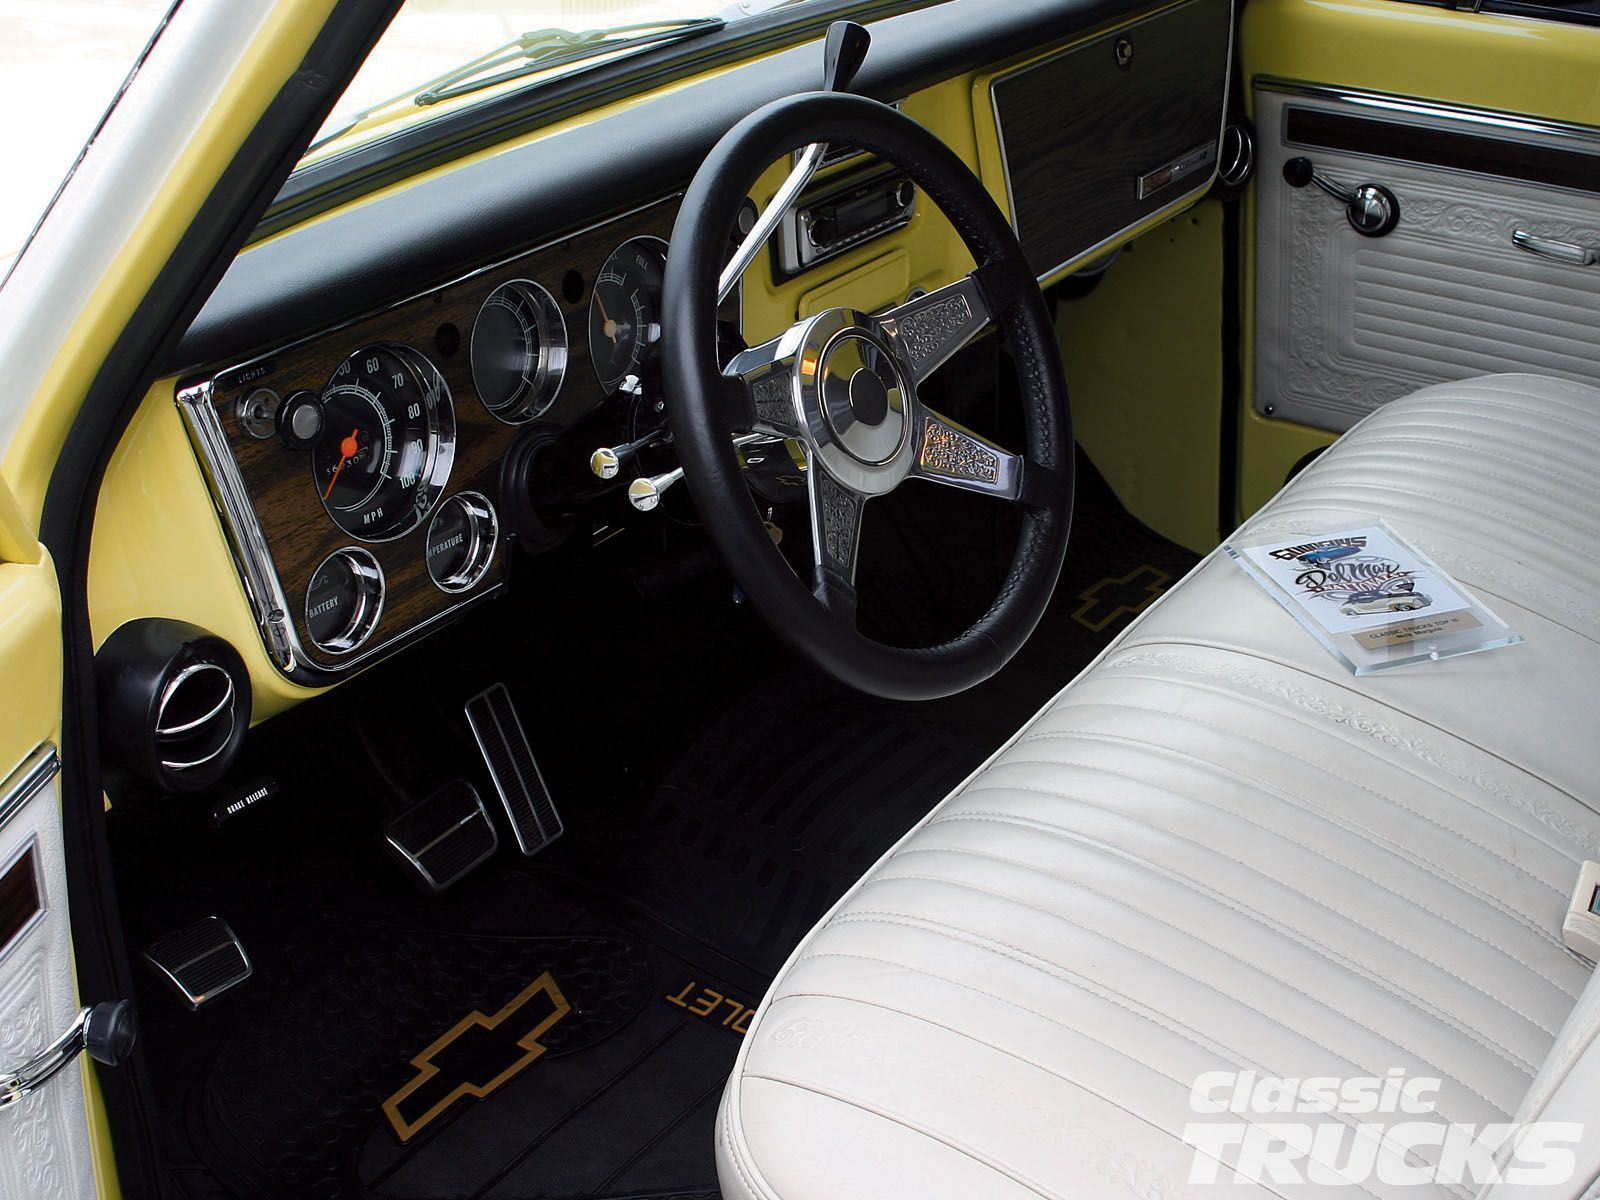 1971 Chevy Pickup Truck Custom Leather Interior